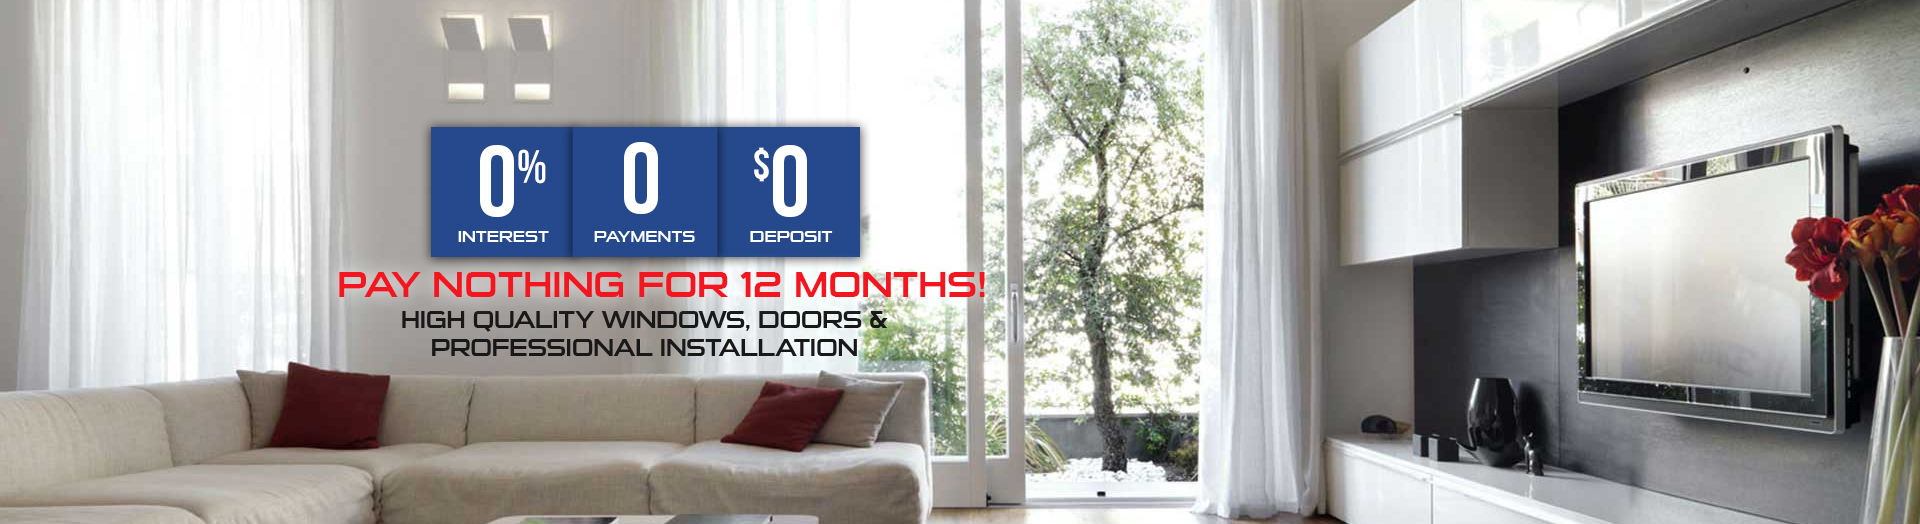 0 interest 0 payments 0 deposit promotion window replacement markham